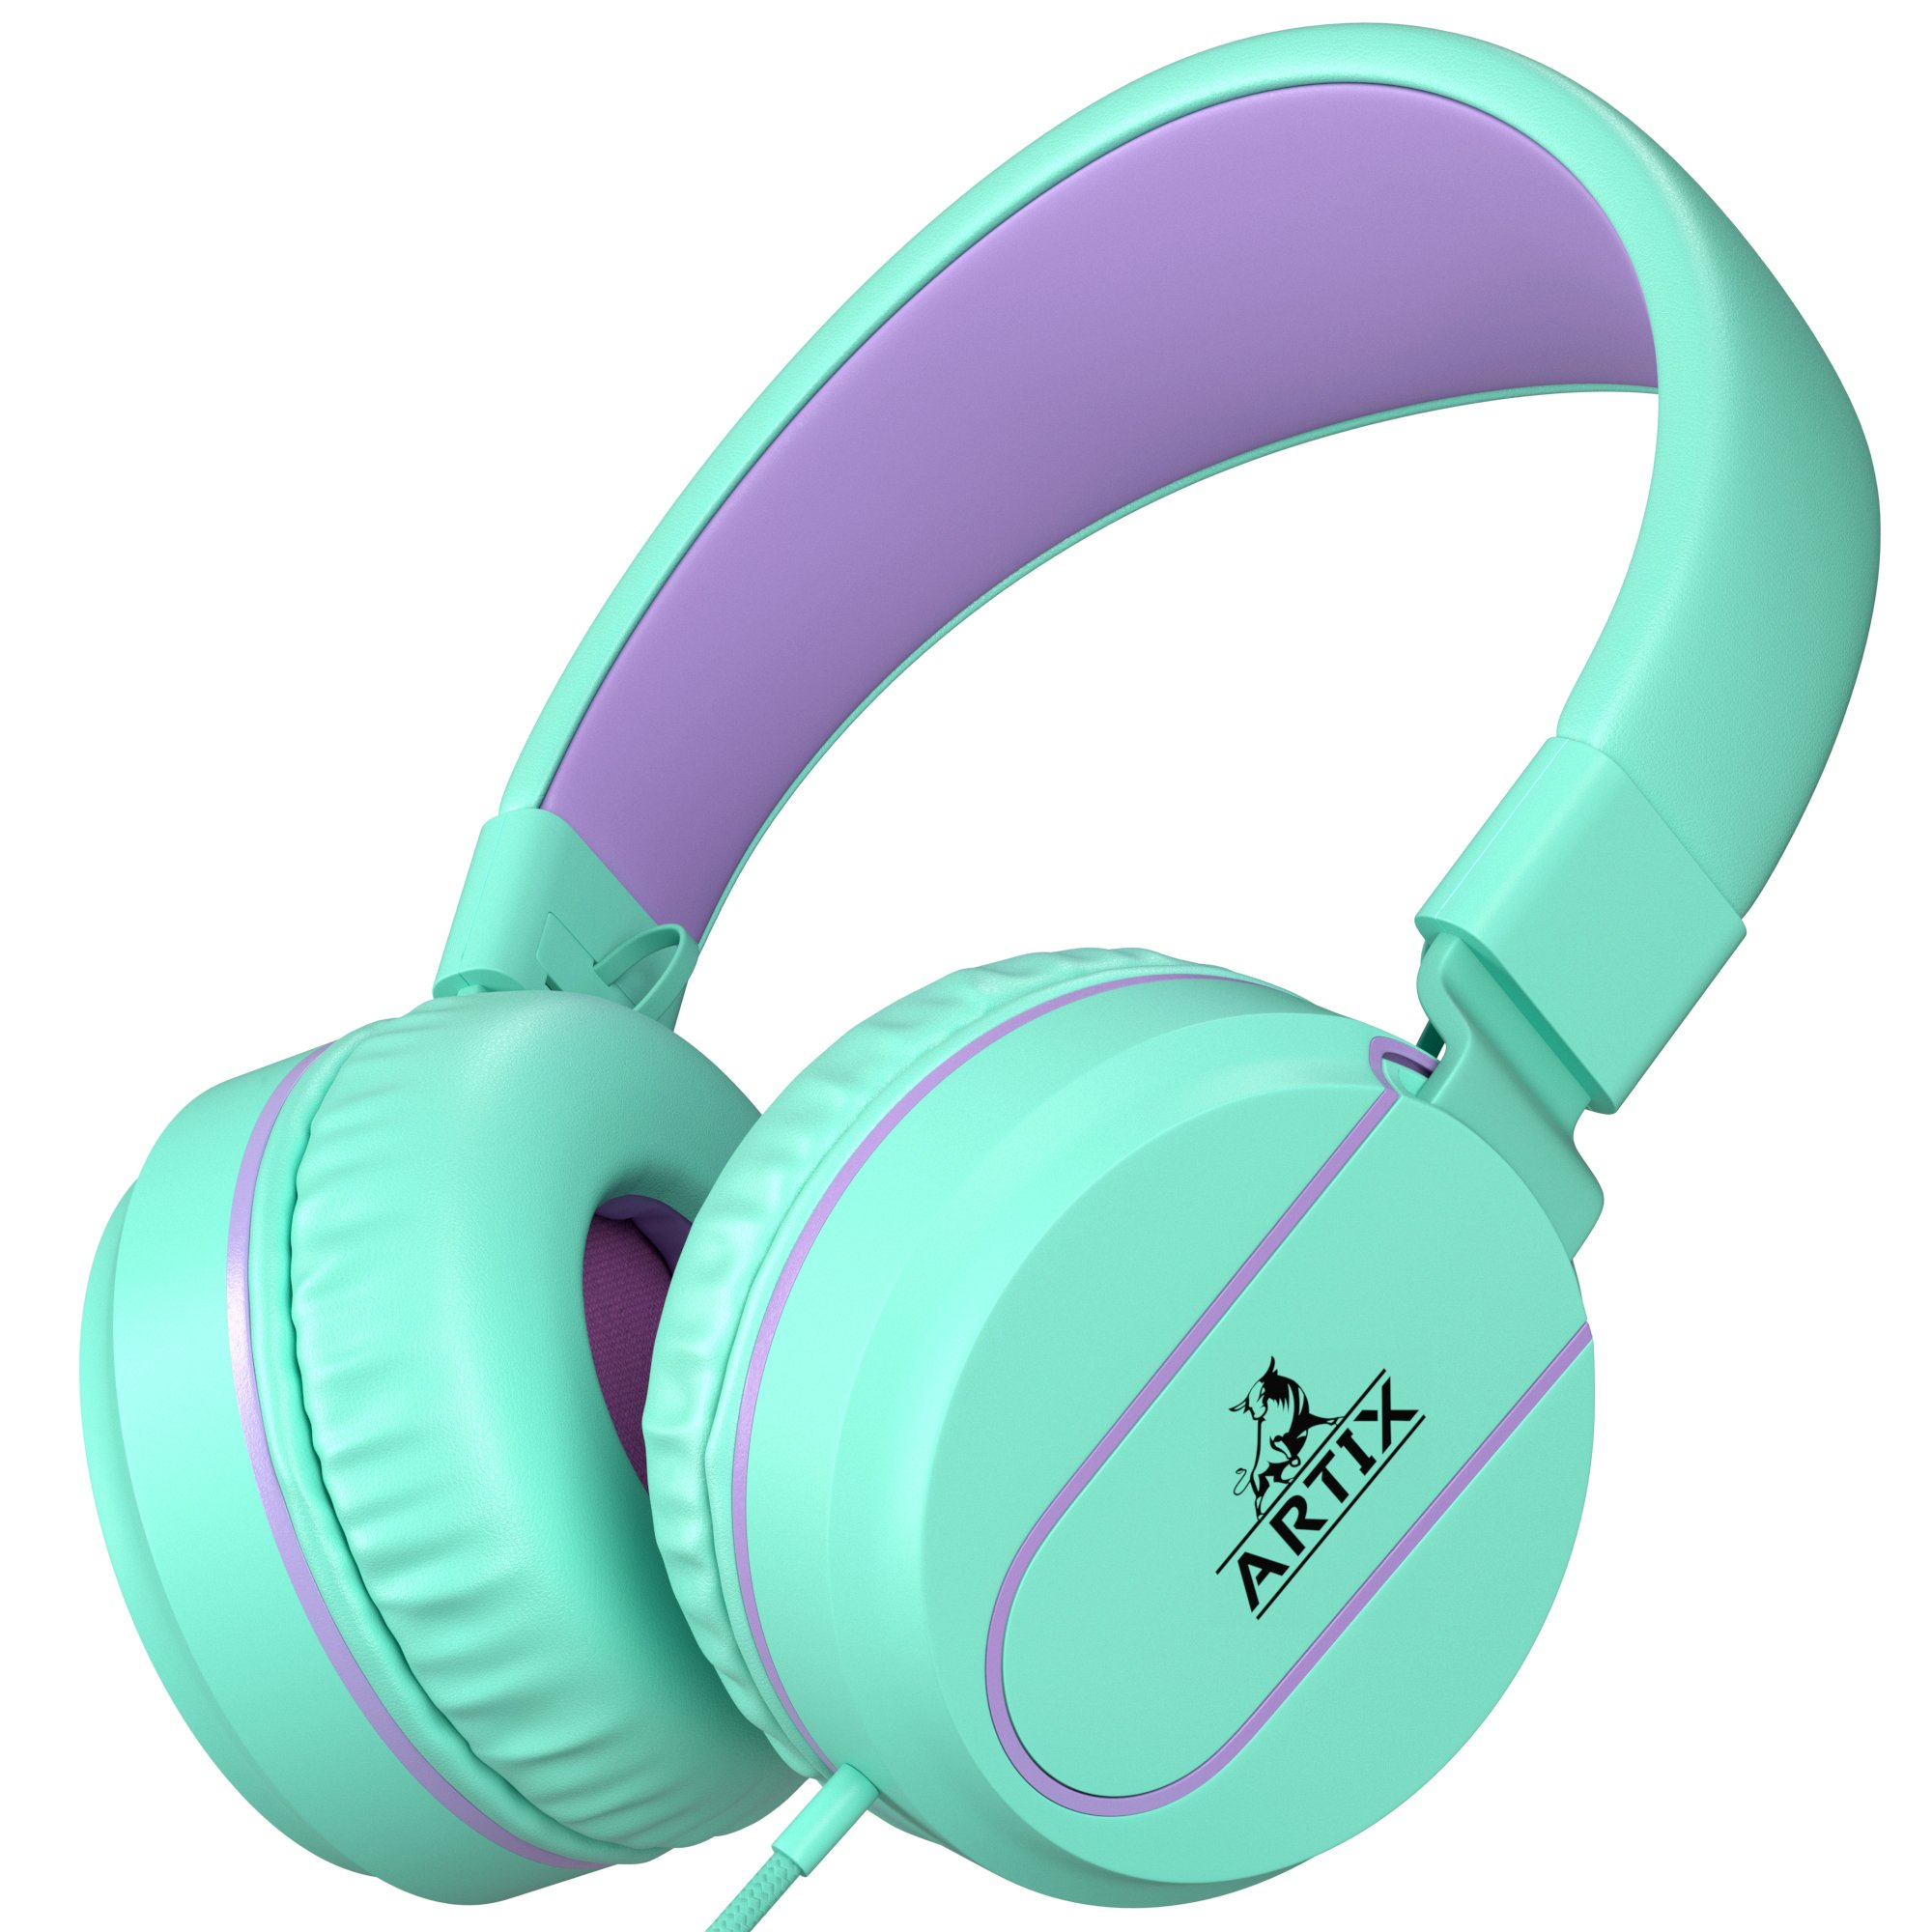 Artix Foldable On-Ear Adjustable Tangle-Free Wired Headphones, Compact Stereo Earphones with In-line Microphone and Controls for Children, Teen, Adult Head Phones for Running Sport, Travel- Turquoise